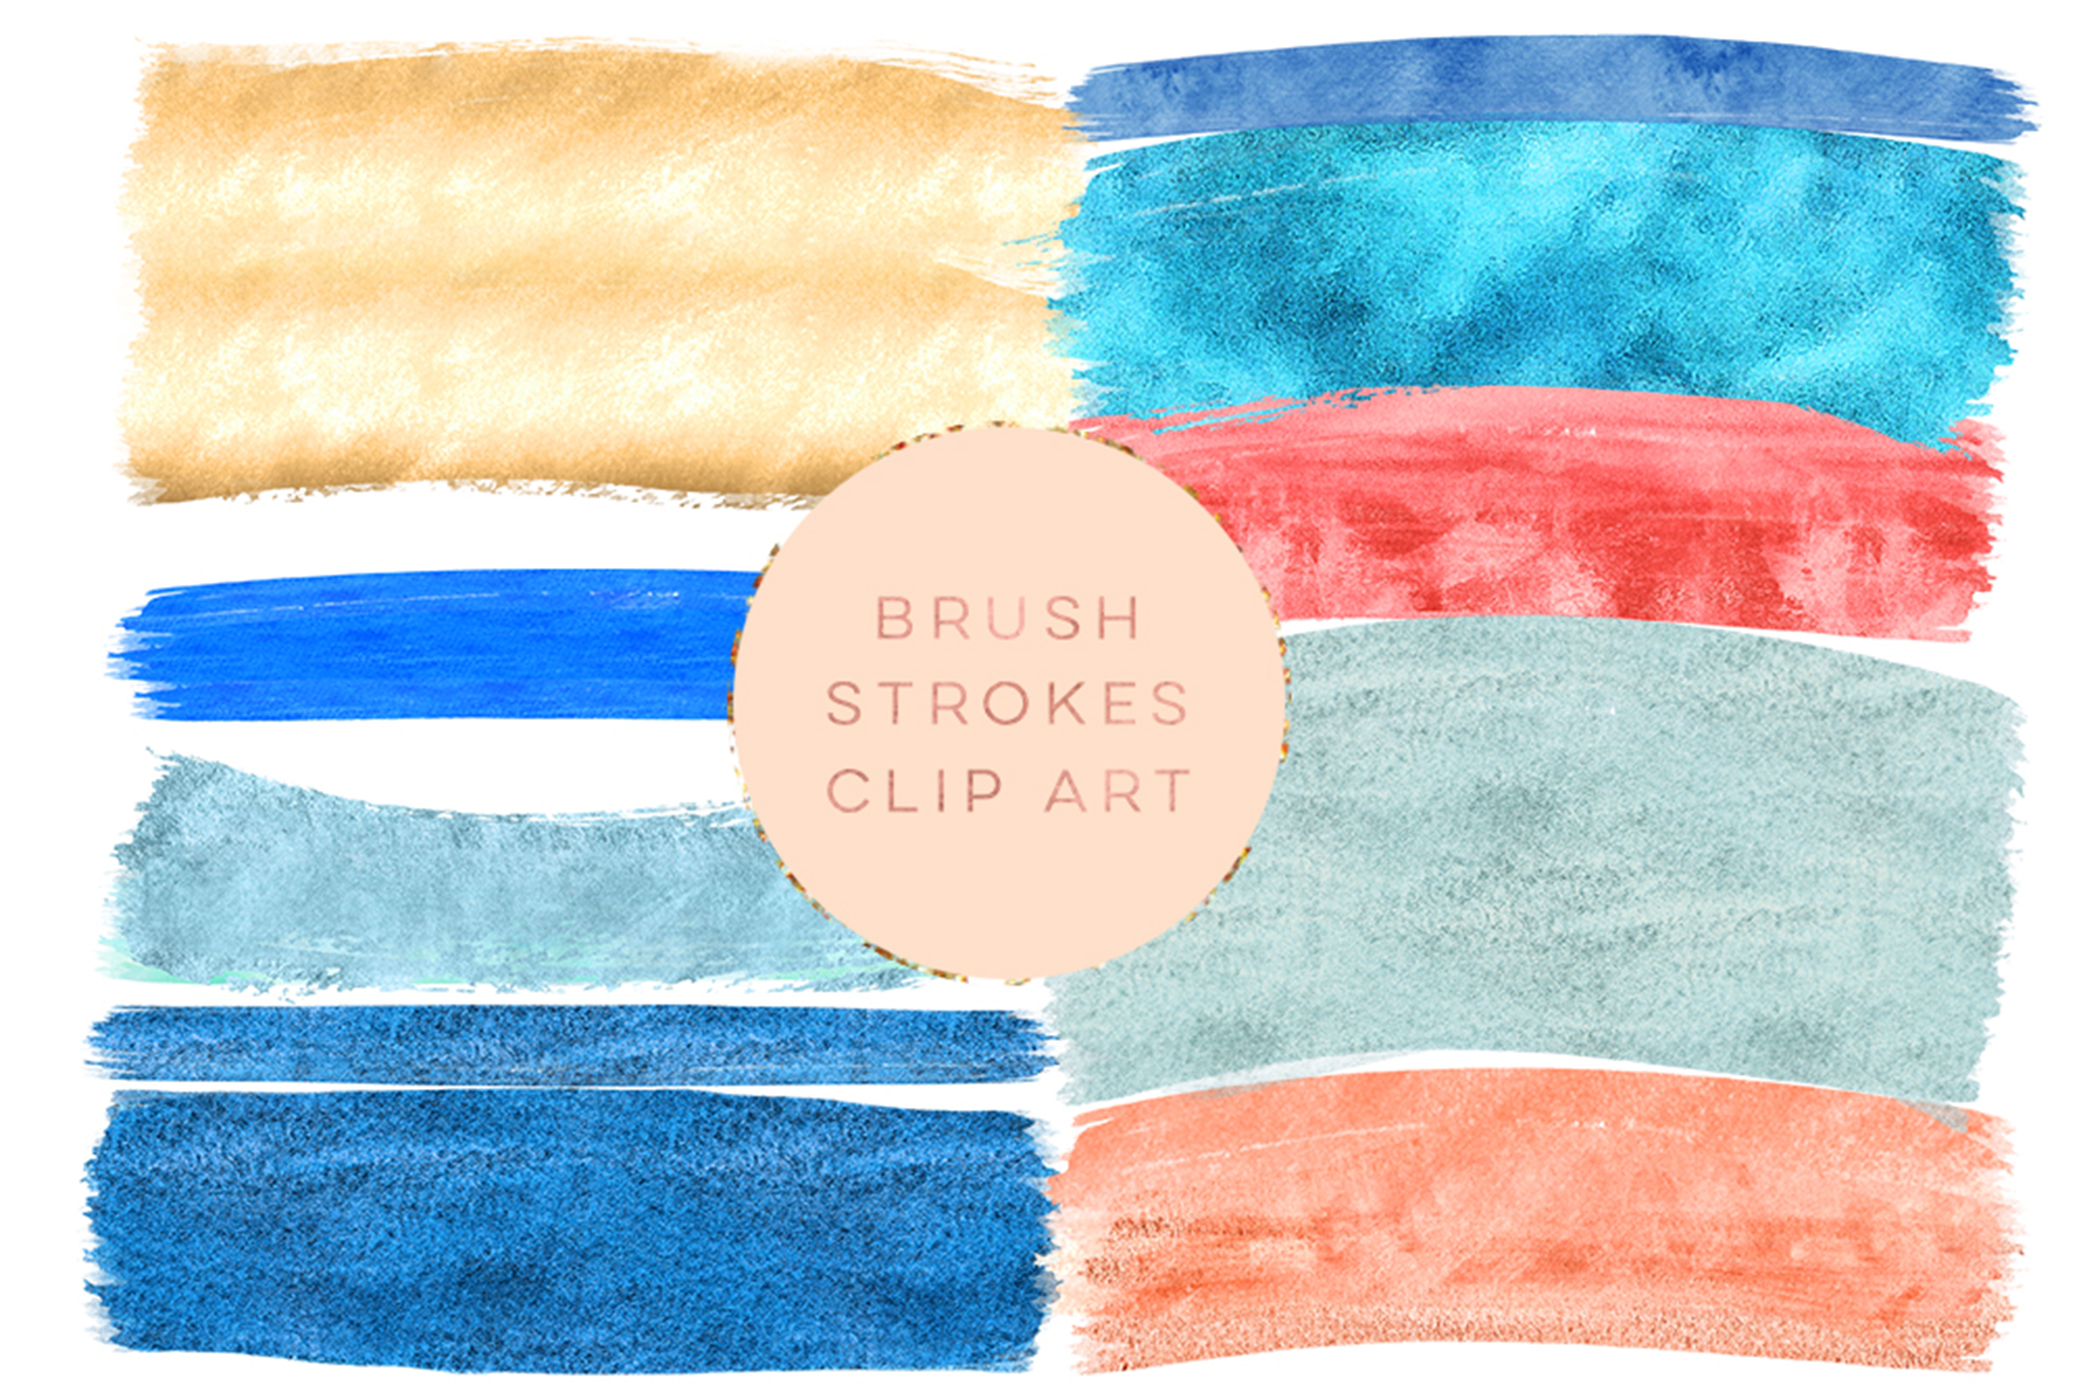 navy blue brush strokes, gold foil clipart brush strokes, paintbrush stroke, Glitter brush strokes, red, blue, yellow clip art, Graphic art example image 2